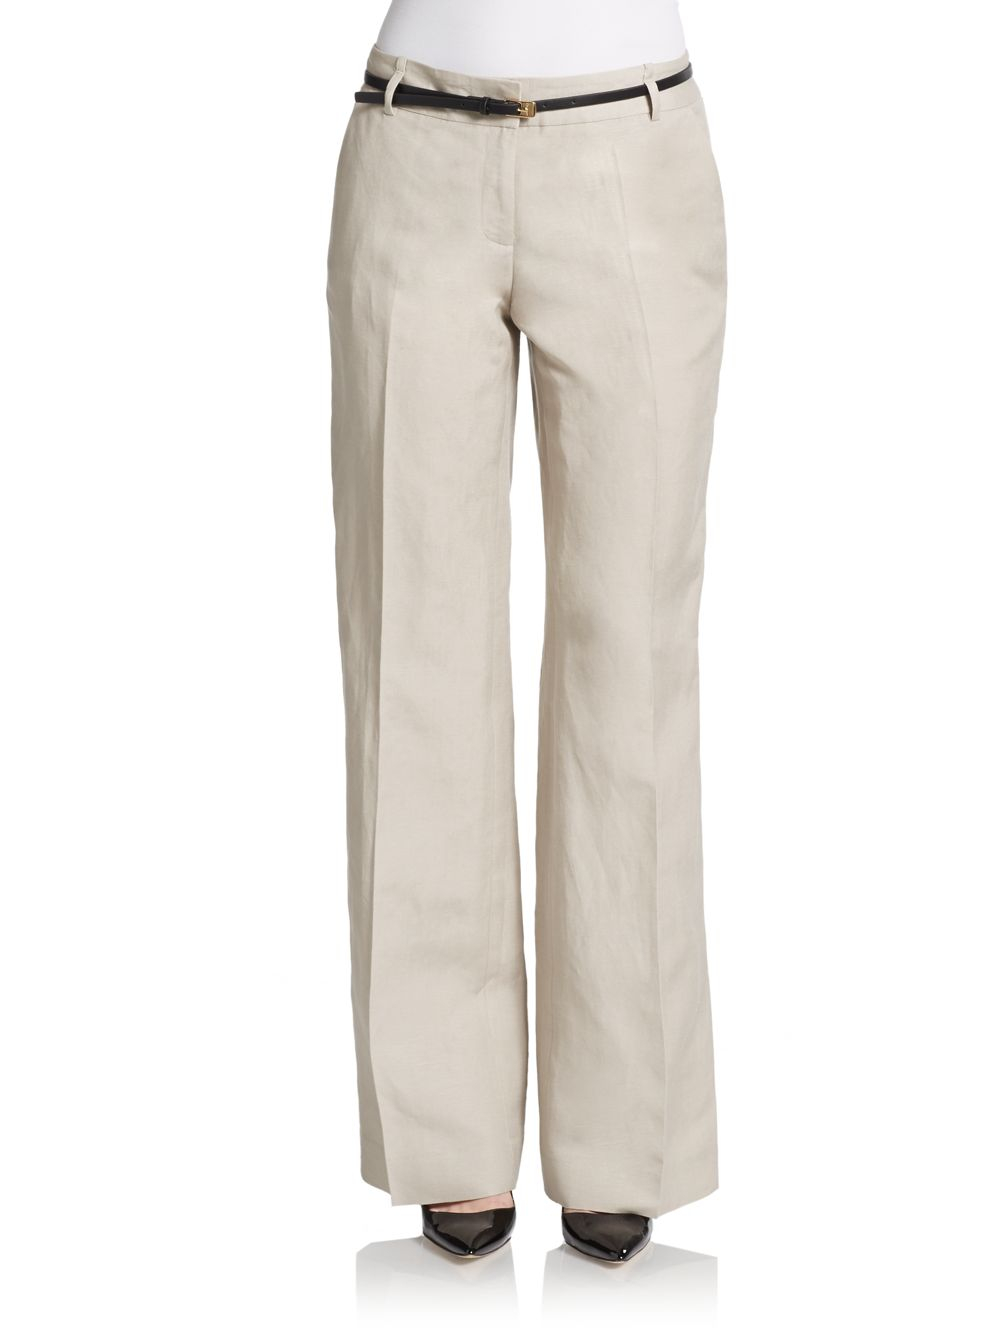 Simple I Recently Went On A Mission To Buy A New Pair Of Khakis  Slightly Closer To The Leg  That Tip Is Applicable For Women Of Every Size As With Most Pant Styles, Tall, Slender Women Have No Problem Wearing Wide Leg Pants There Are A